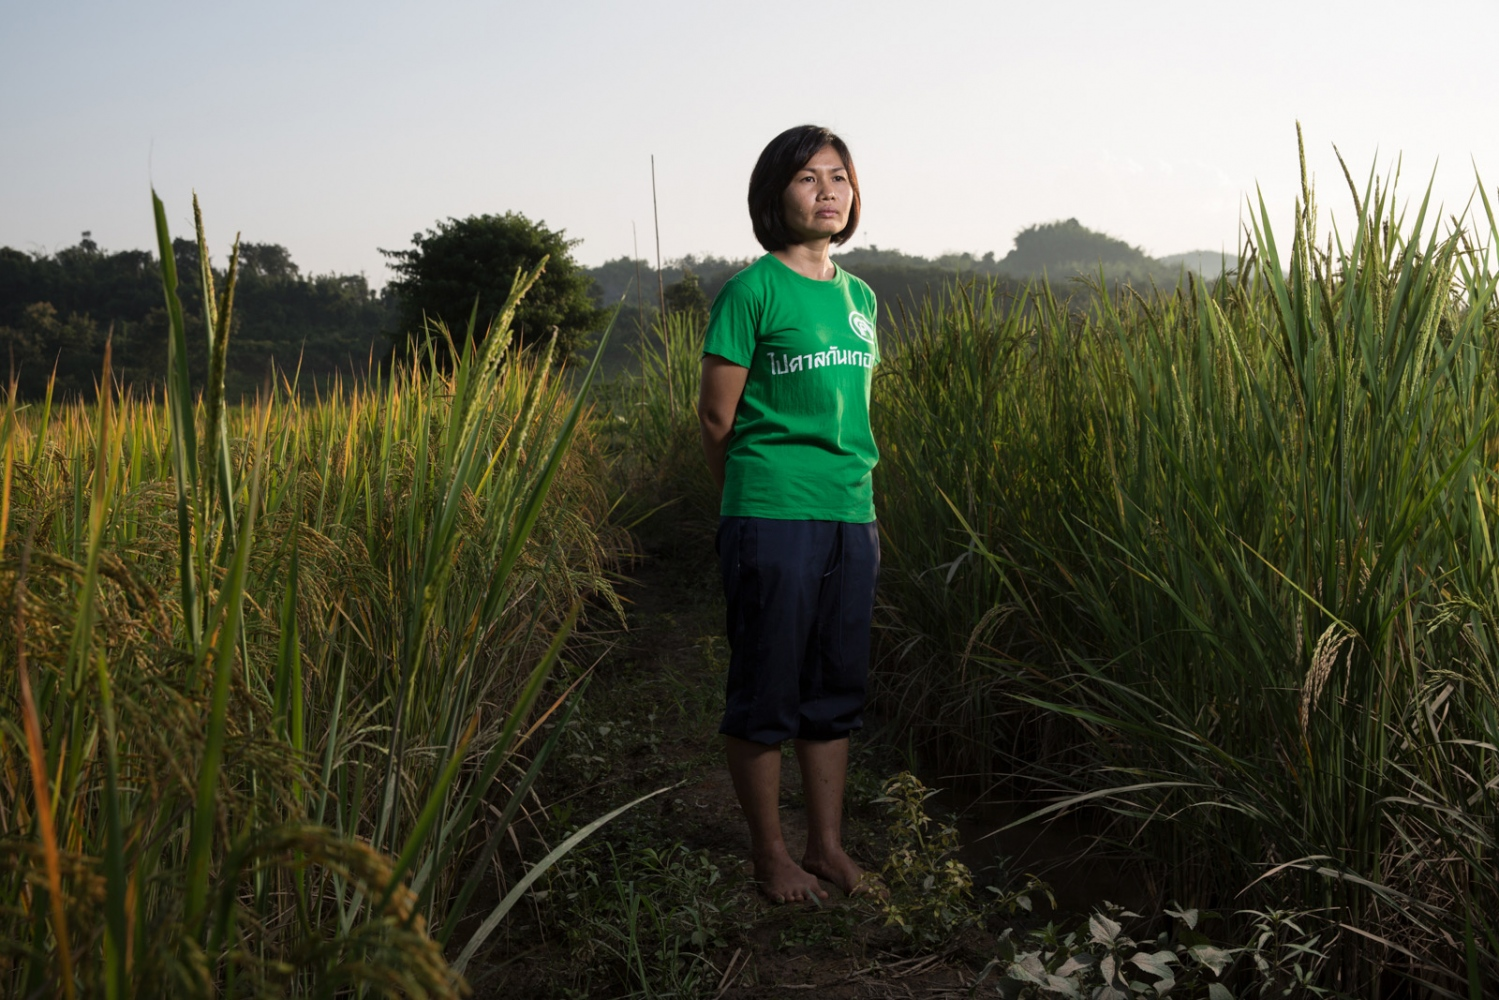 Phattraporn Kaengjumpa, a member of the Khon Rak Ban Kerd Environmental Group stands in a rice paddy in the village of Na Nong Bong in Loei Province. The mountains behind her are the location of a gold mine that the villagers allege continues to contaminate their water supply and affect their crops.